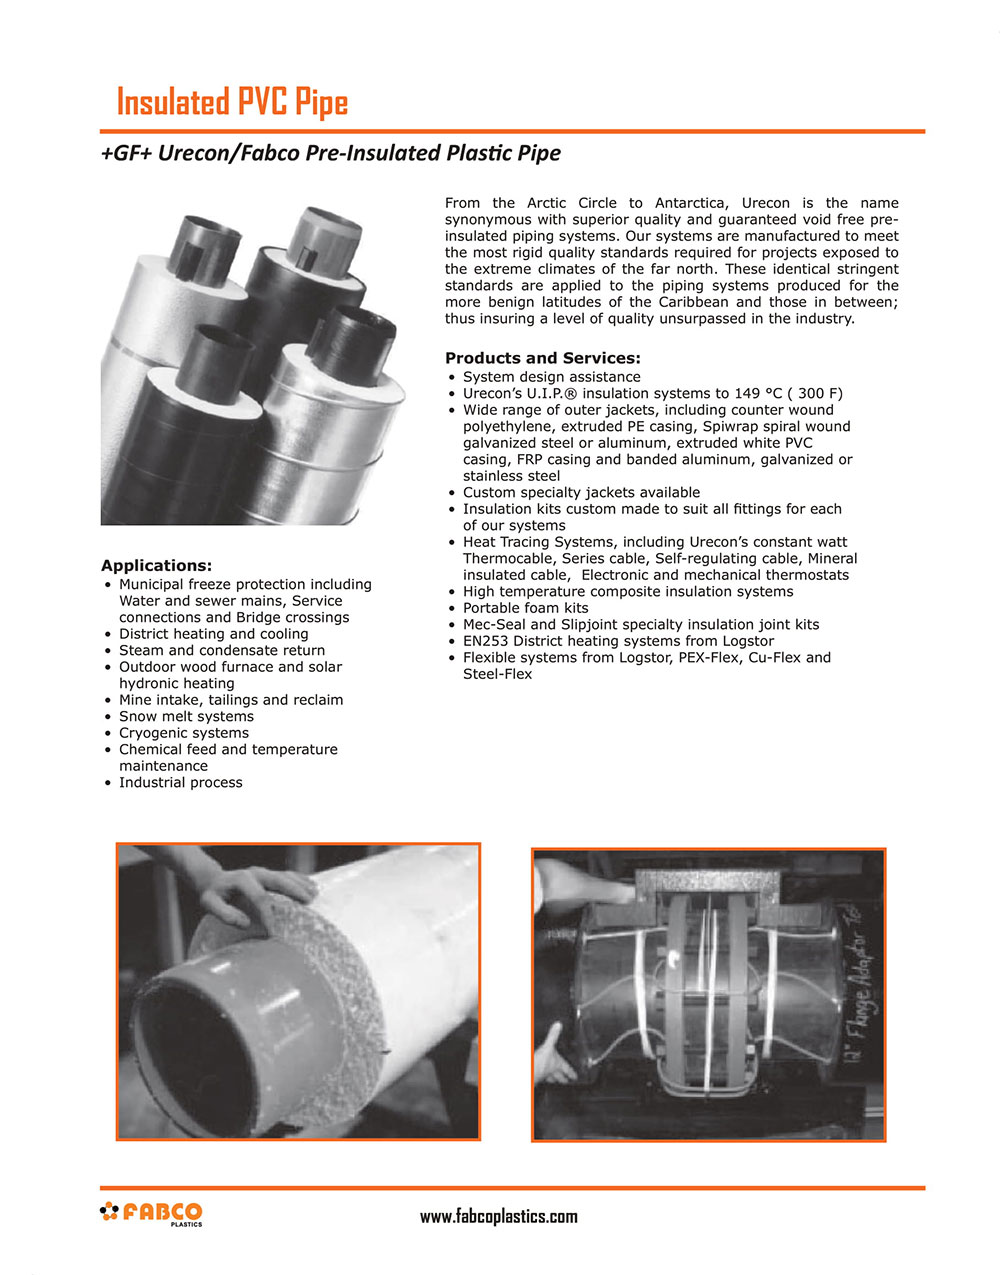 Insulated PVC Pipe